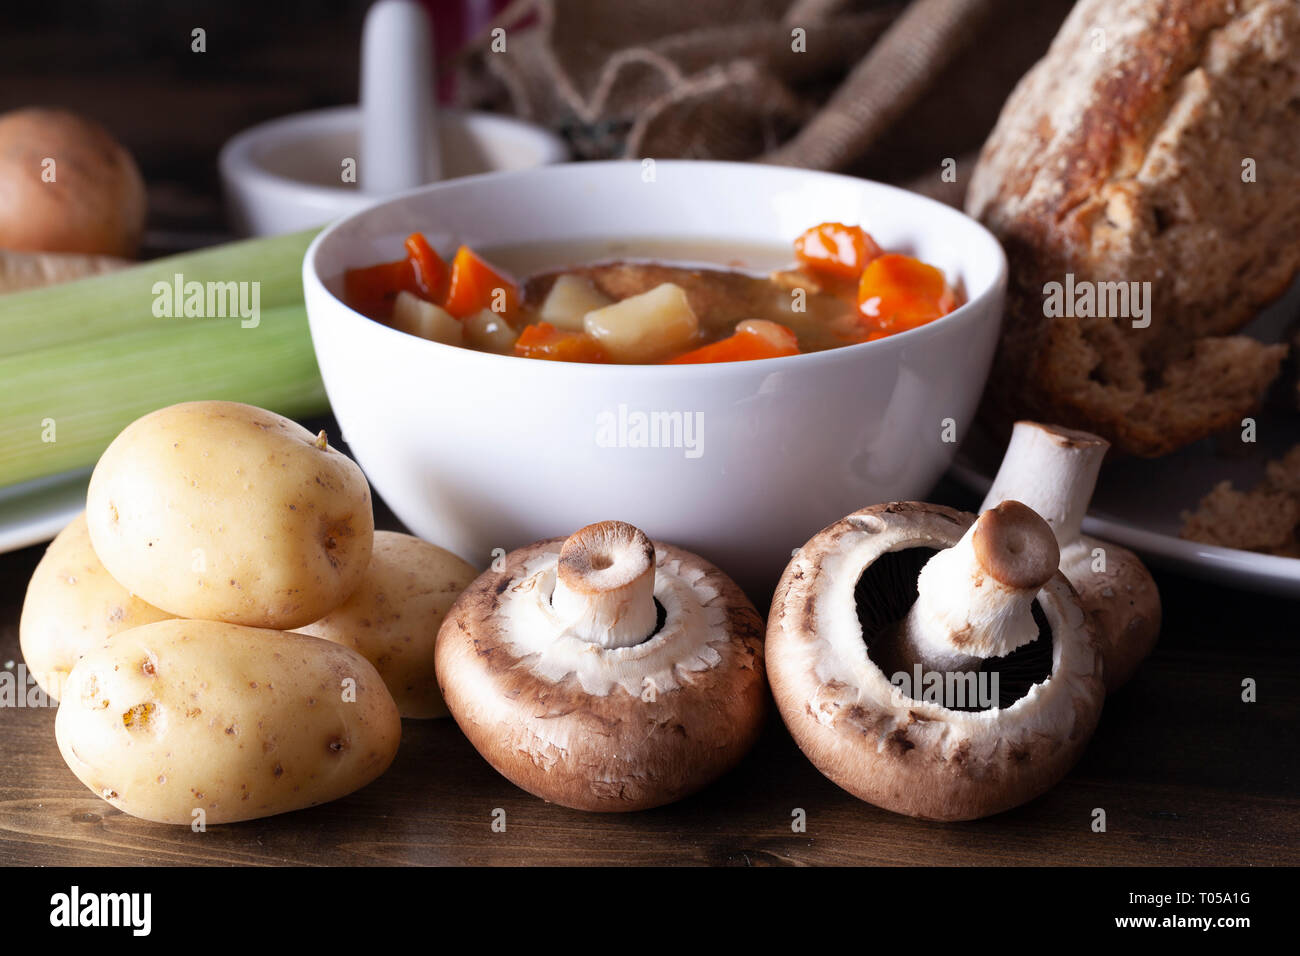 Winter food ona table with soup and brown mushrooms, potatoes and rustic bread. White bowl with warm brown tones Stock Photo